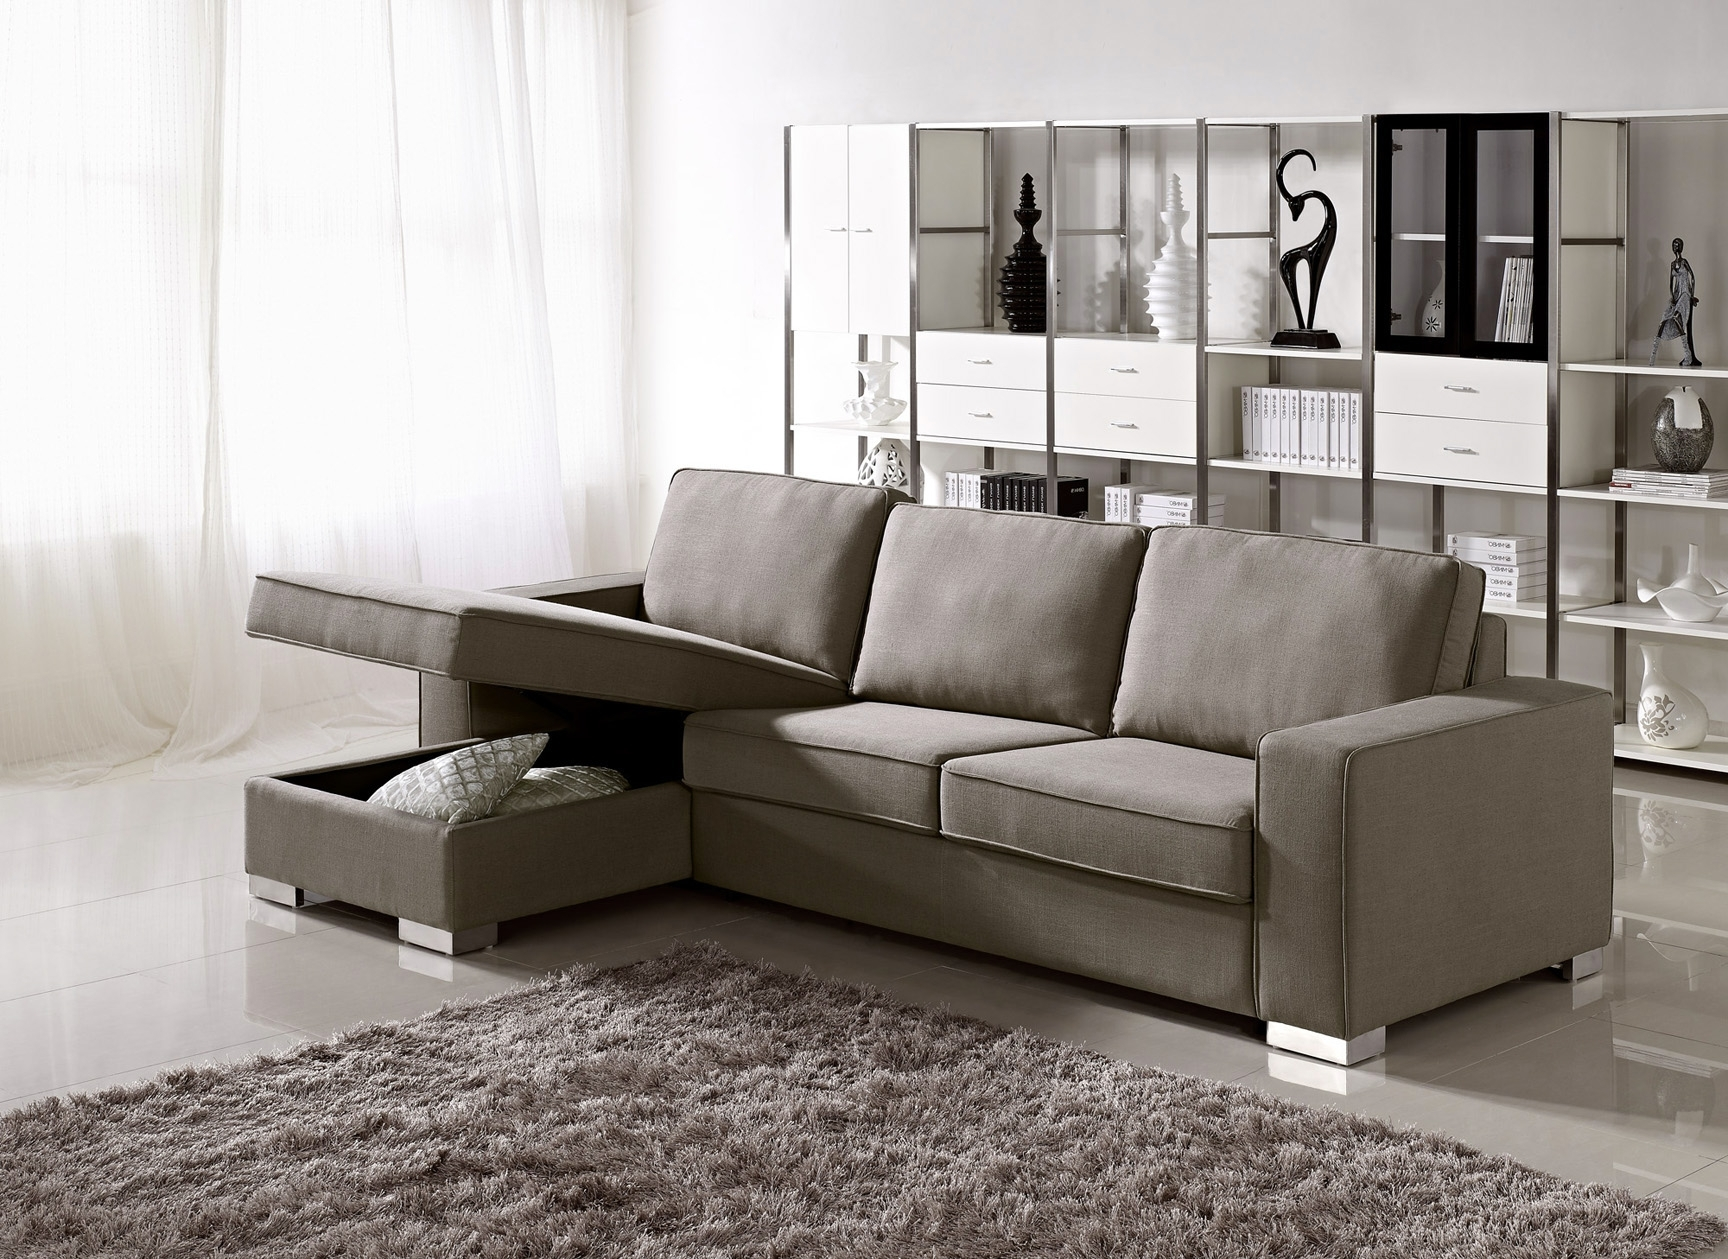 Most Current Greenville Nc Sectional Sofas With Furniture : Most Comfortable Stylish Couches For Living Room Ideas (View 4 of 15)